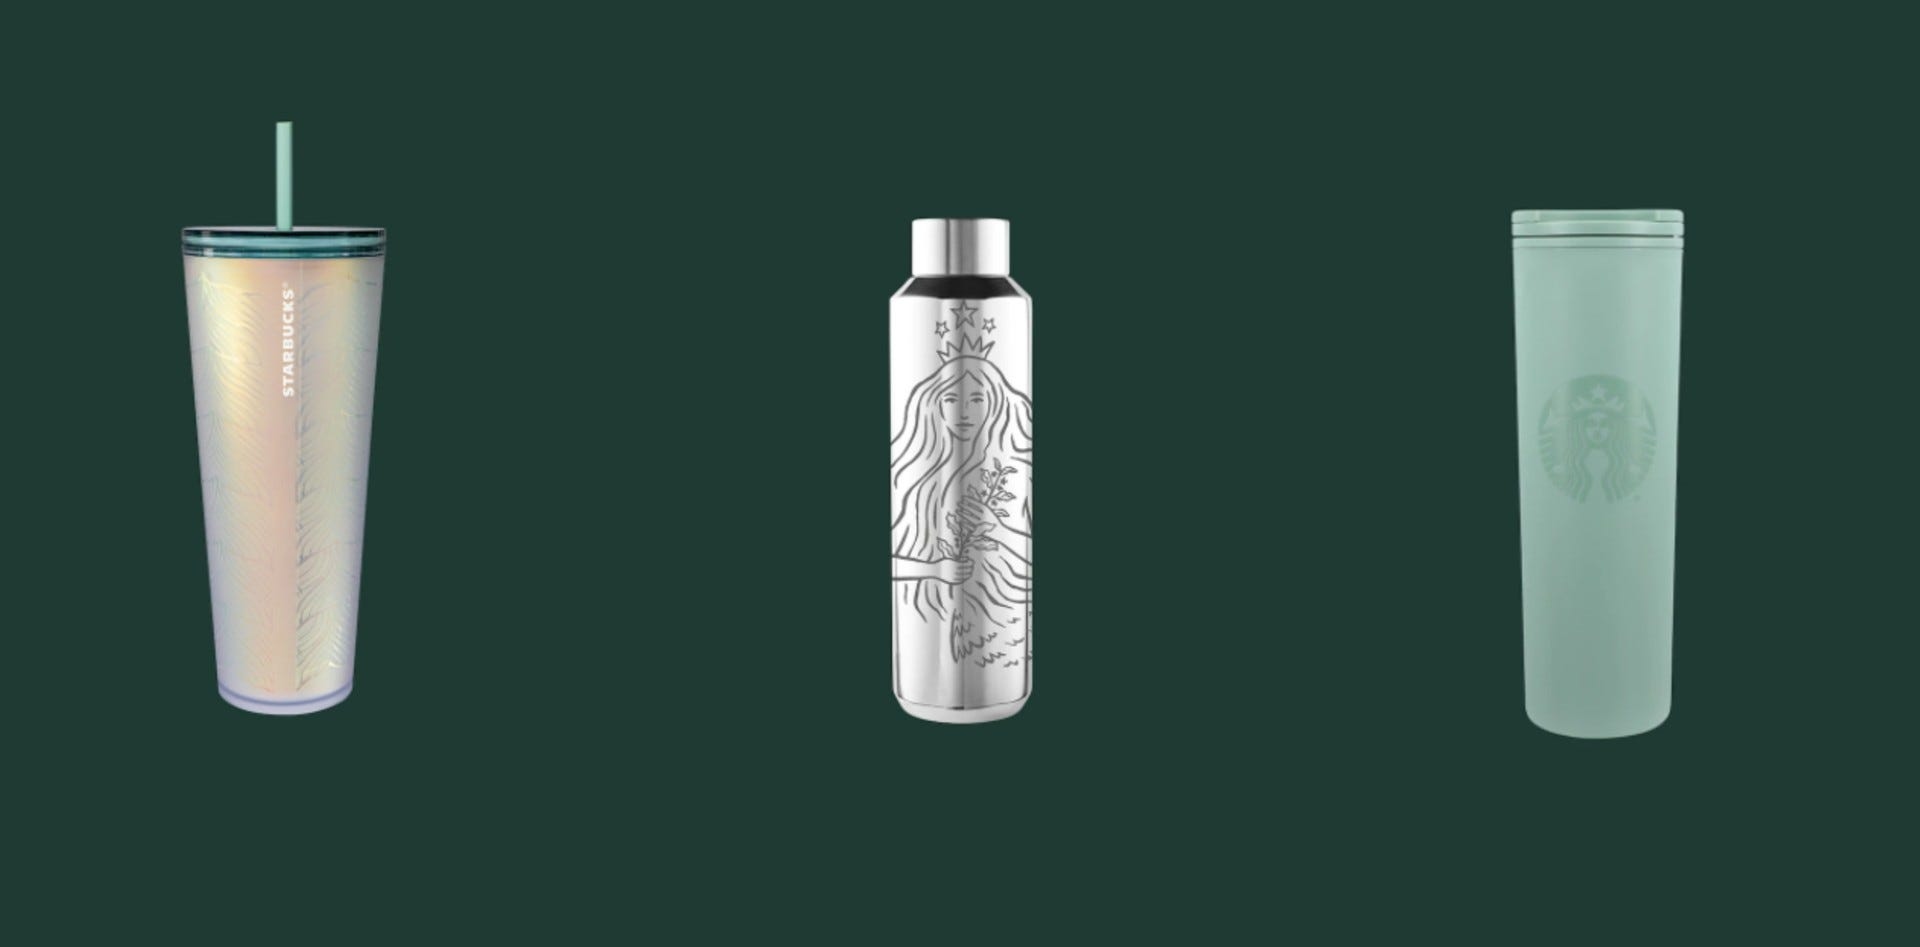 The Starbucks cold cup, stainless steel water bottle, and mint tumbler.